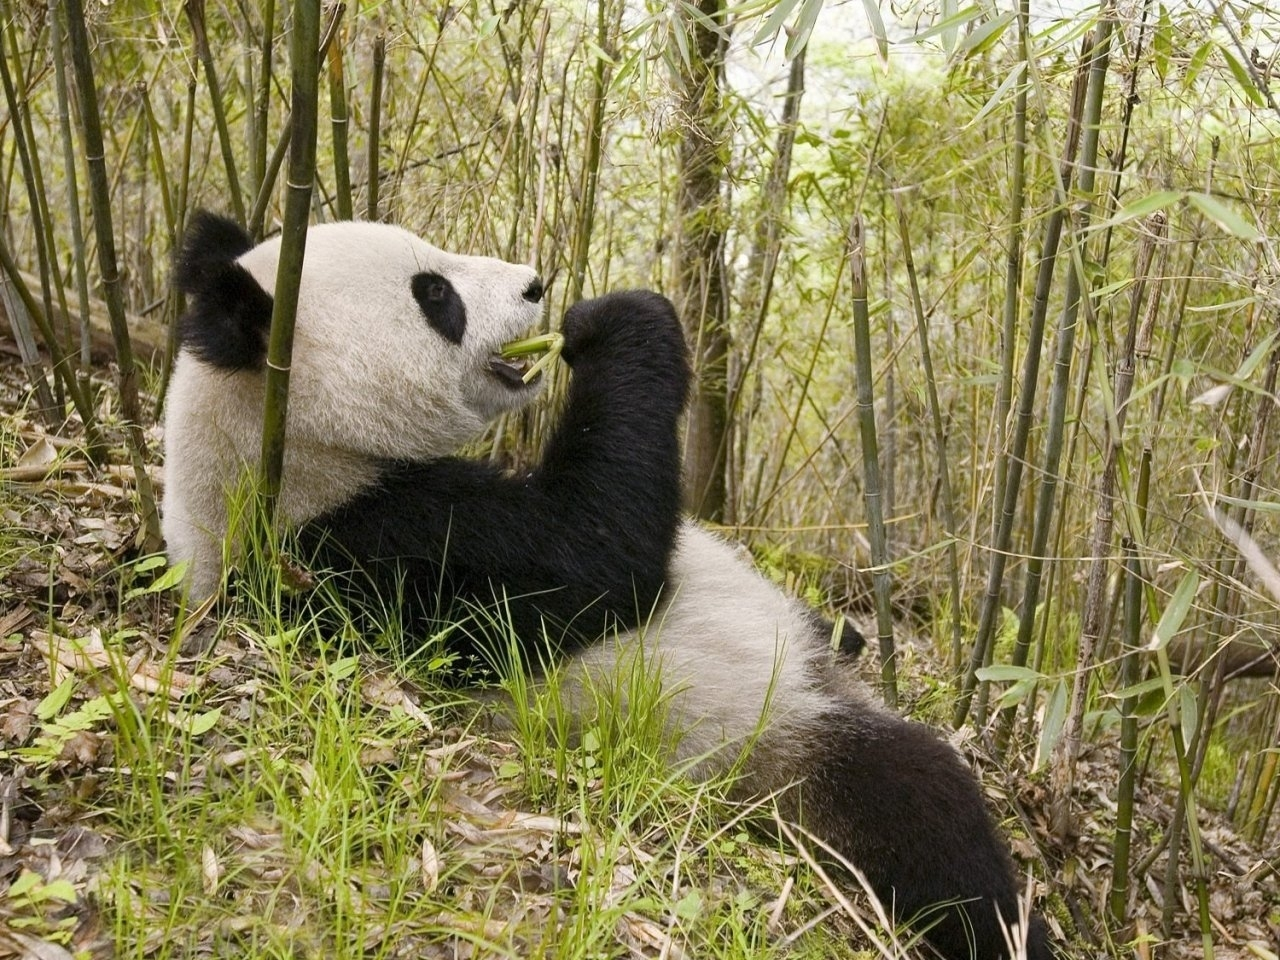 42024 download wallpaper Animals, Pandas screensavers and pictures for free